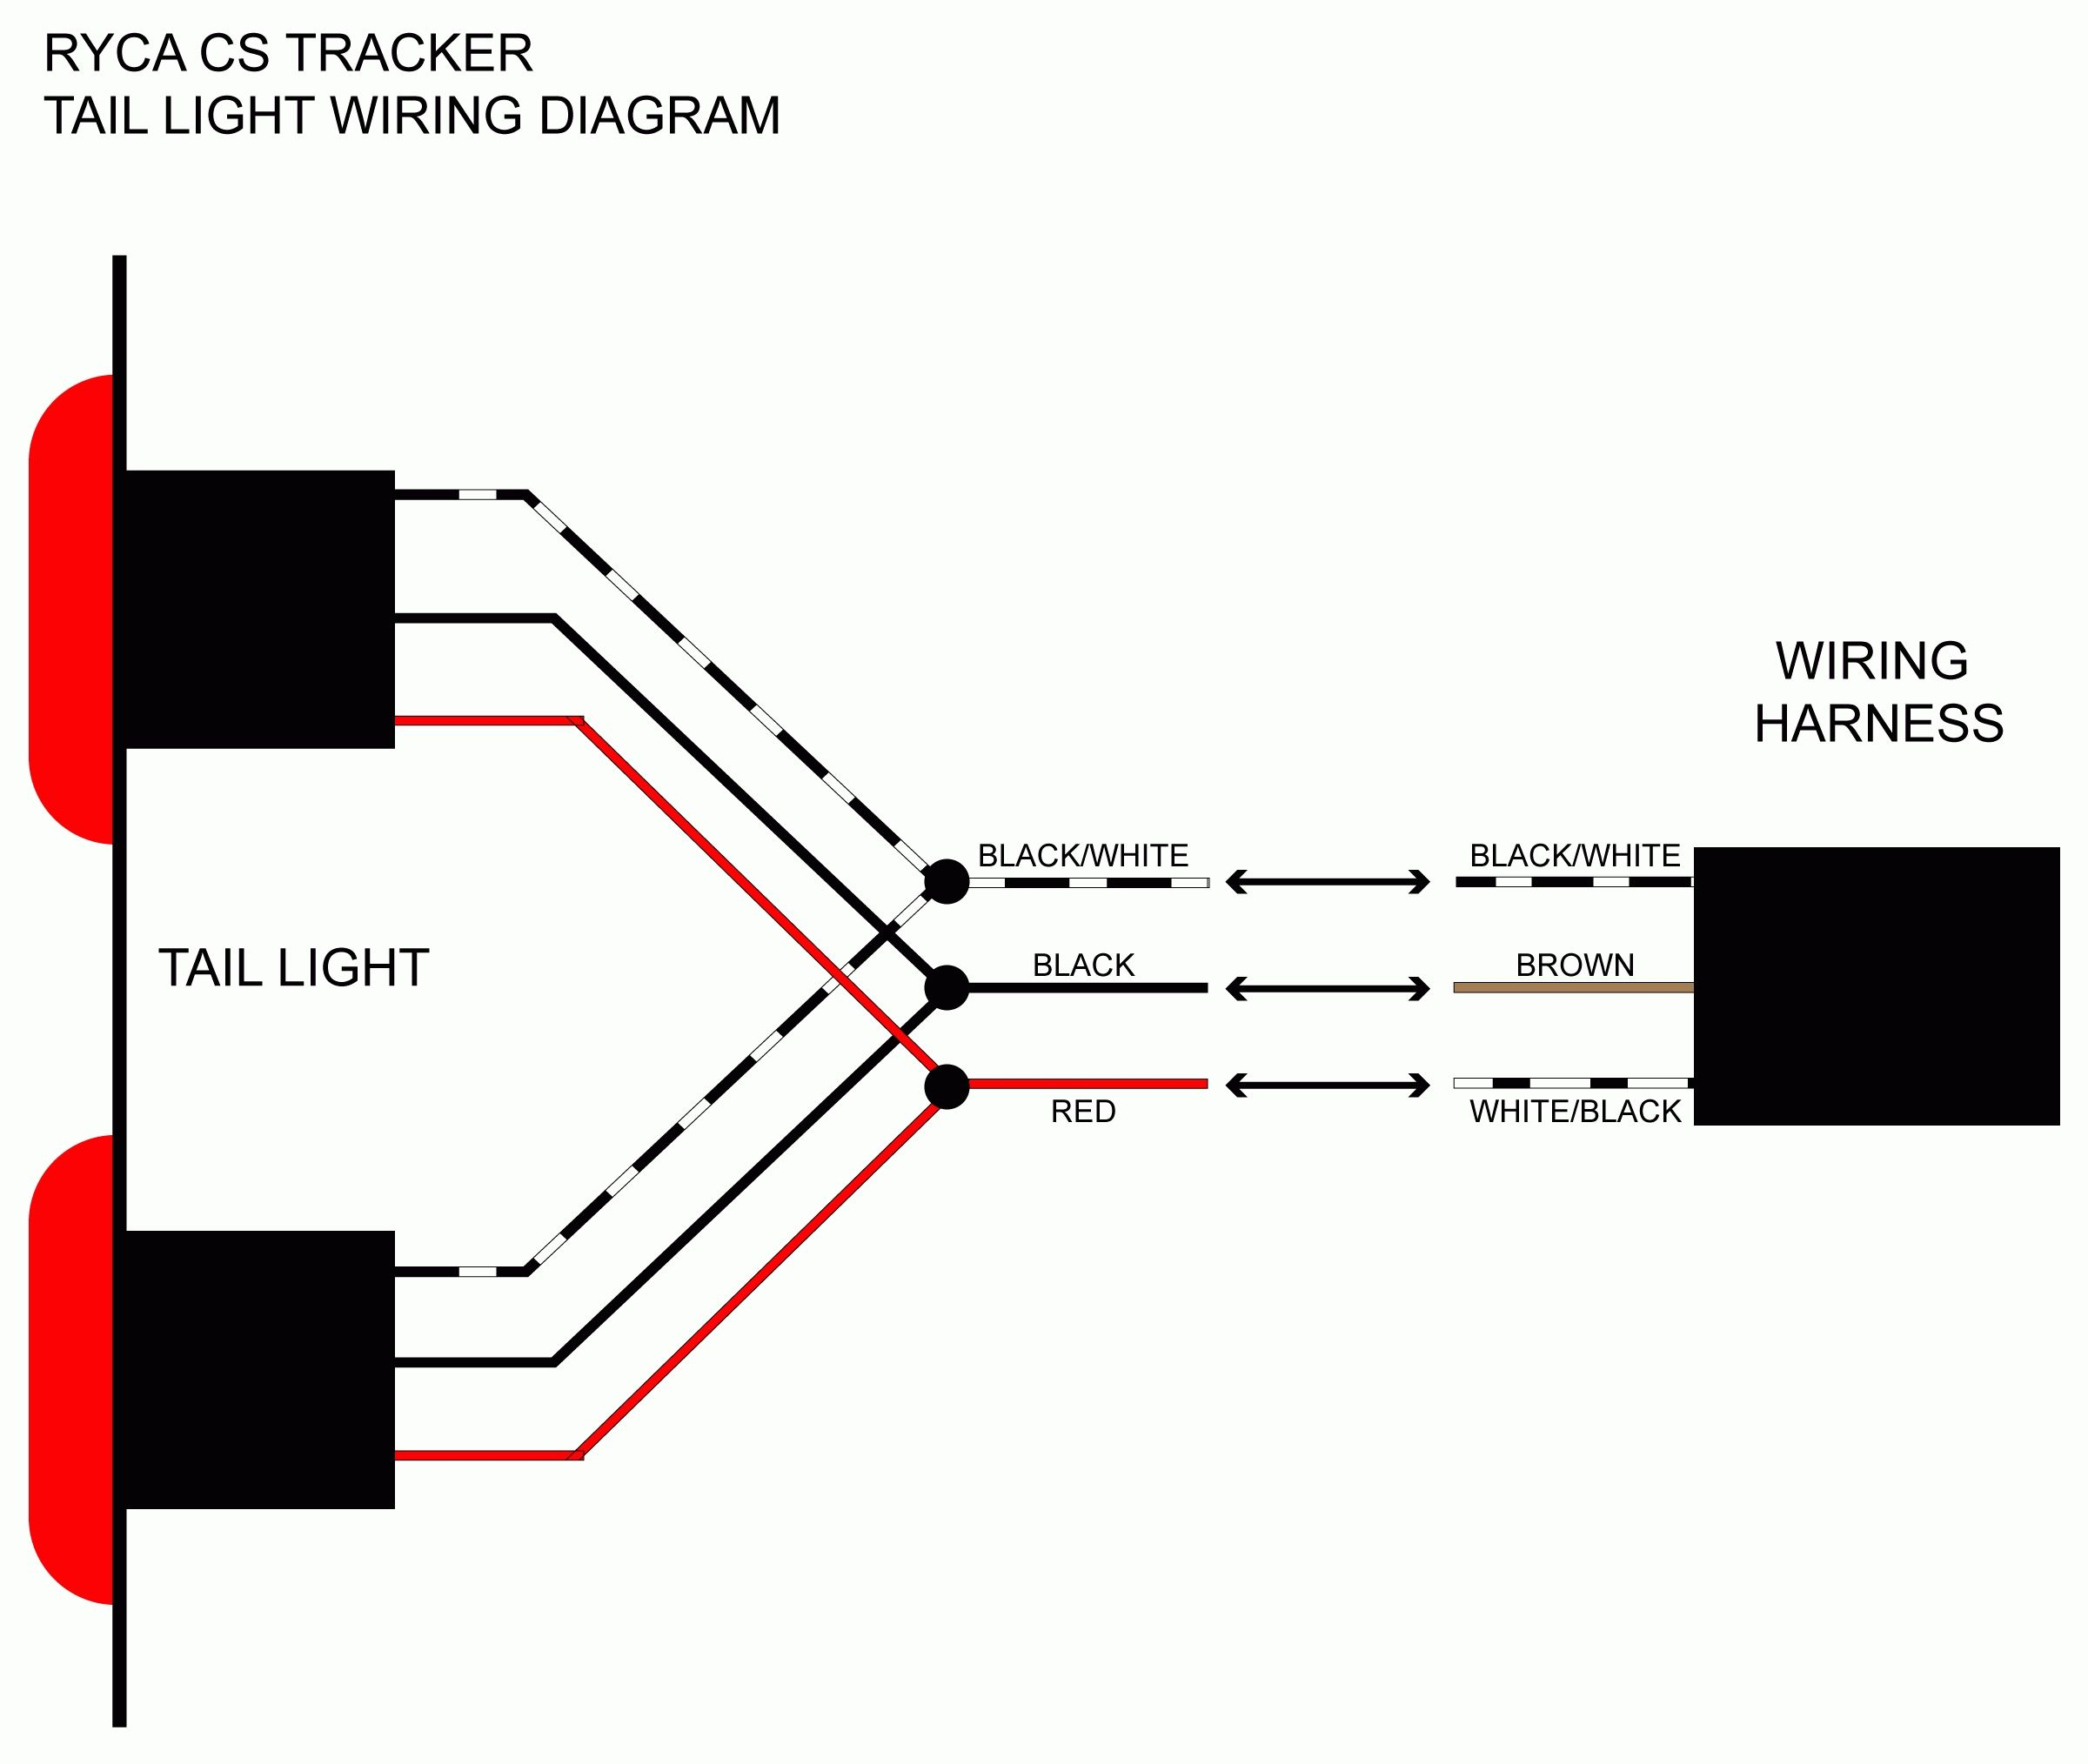 Wiring Diagram For Led Tail Lights Fitfathers Me Unusual Light And Regarding Tail Light Wiring Diagram Trailer Light Wiring Led Trailer Lights Led Tail Lights